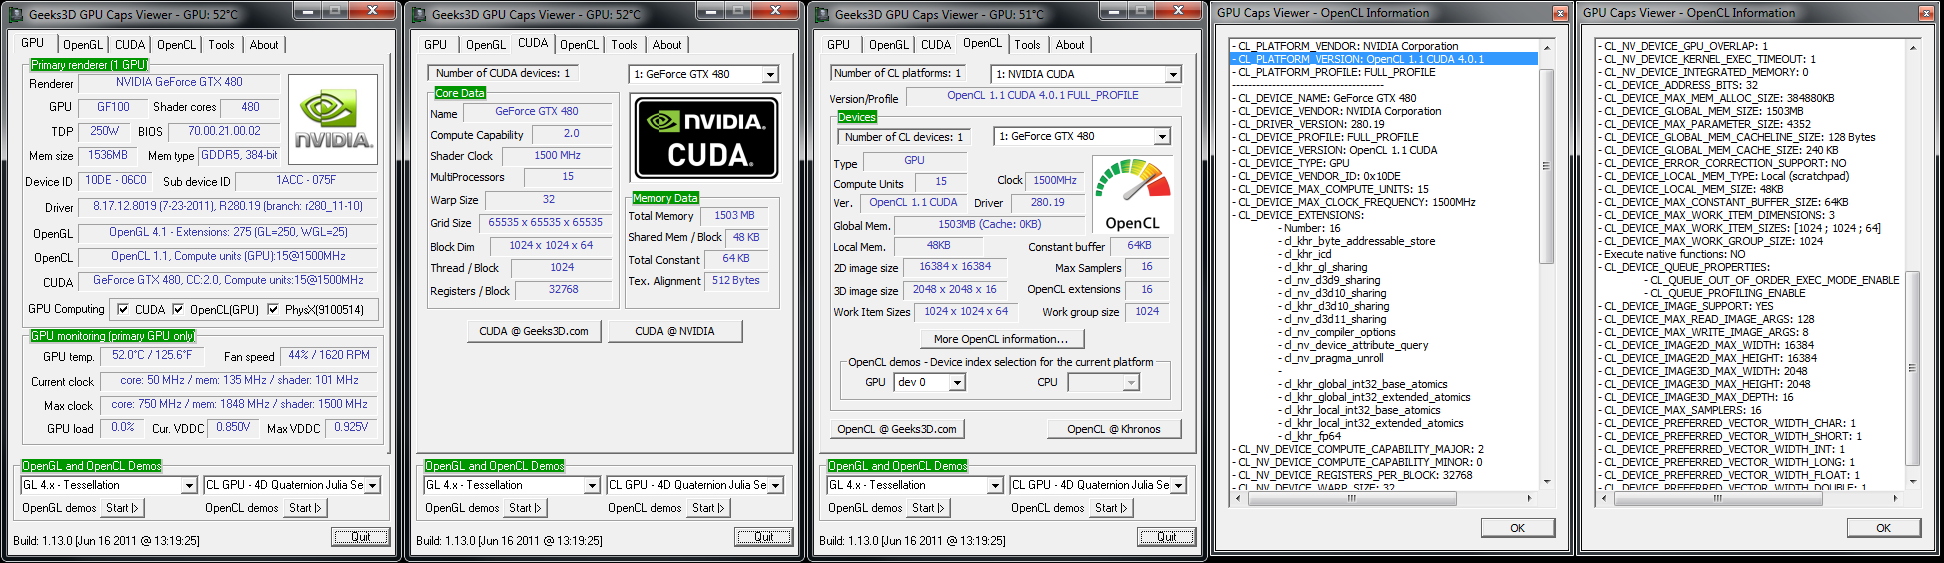 Overview with GPU Caps Viewer. Open CL has been upgraded to 1.1 and CL_DEVICE_IMAGE2D_MAX_WIDTH and _HEIGHT have been changed.